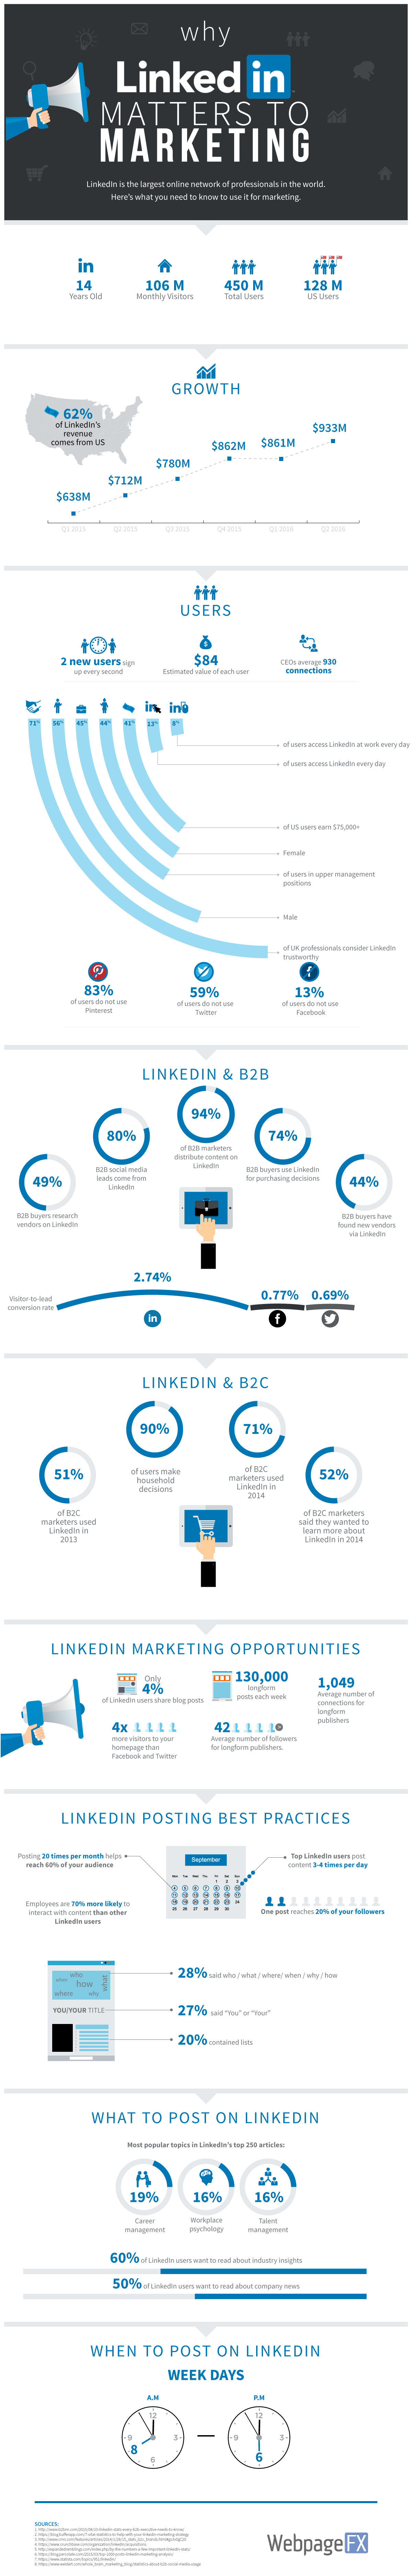 why-linkedin-matters-to-marketing